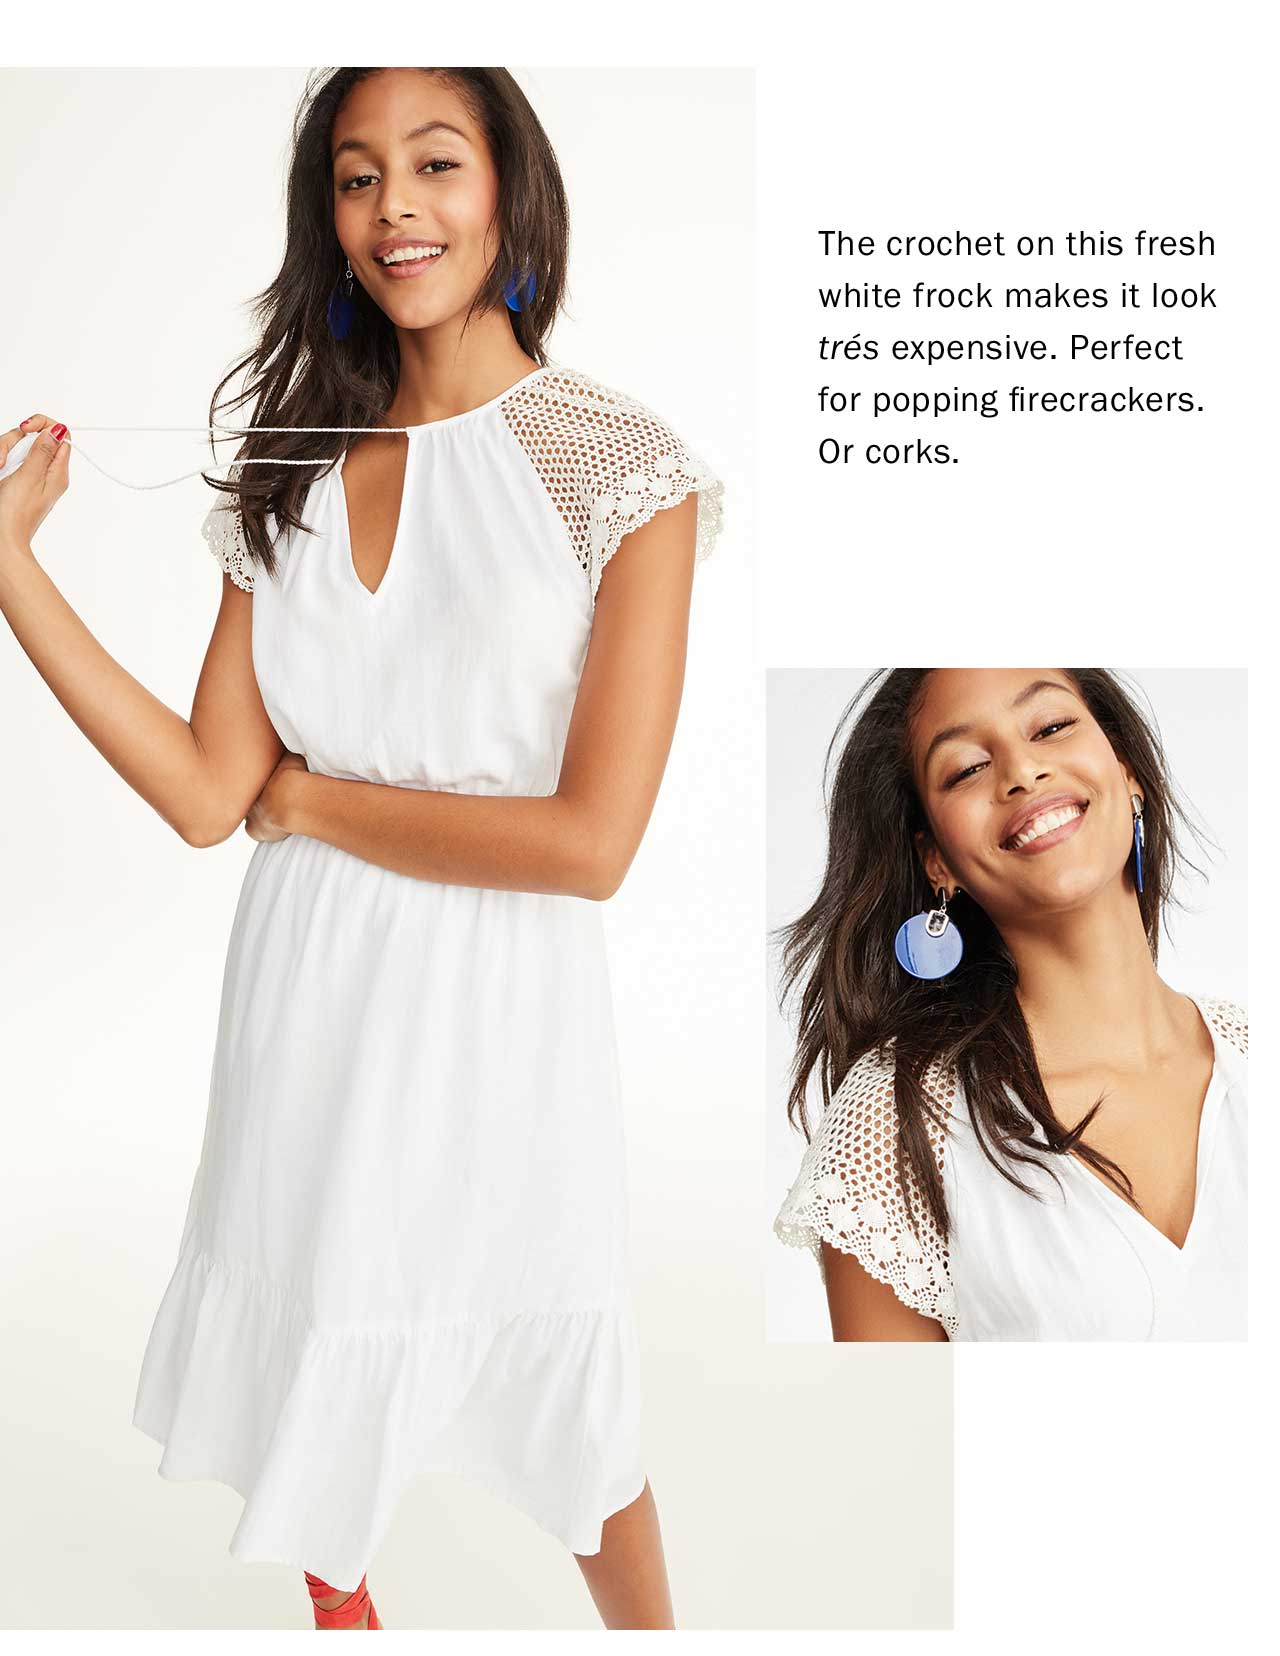 The crochet on this fresh white frock makes it looktrsexpensive. Perfect for popping firecrackers. Or corks.